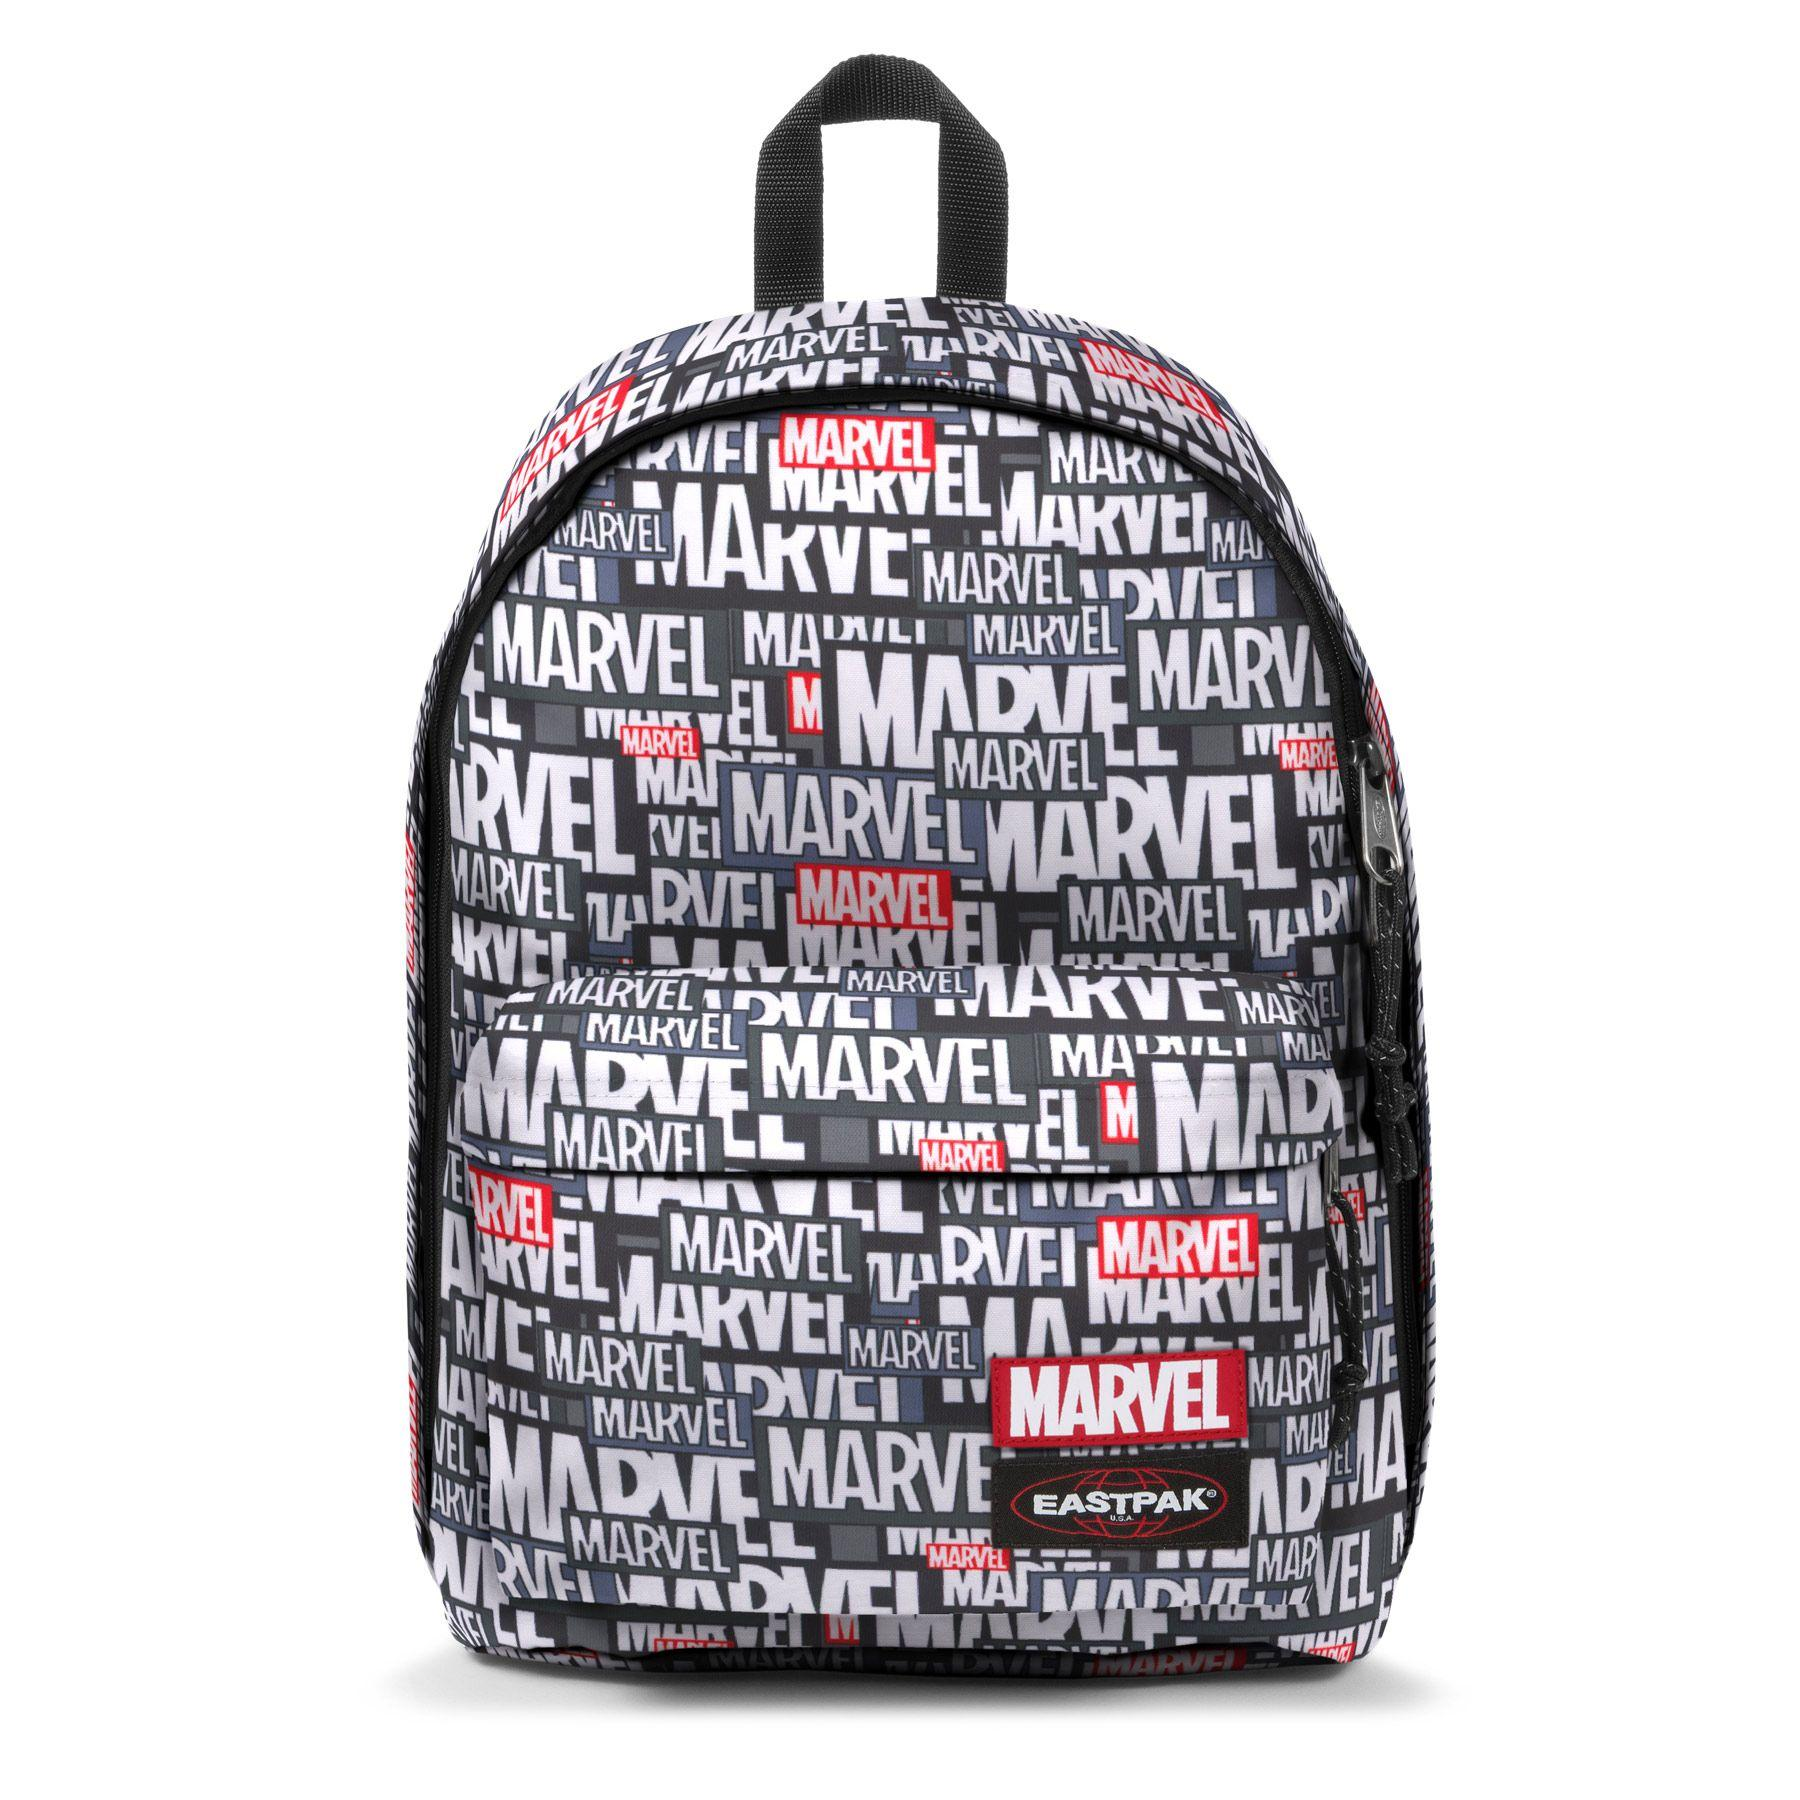 Eastpak Out Of Office MARVEL black